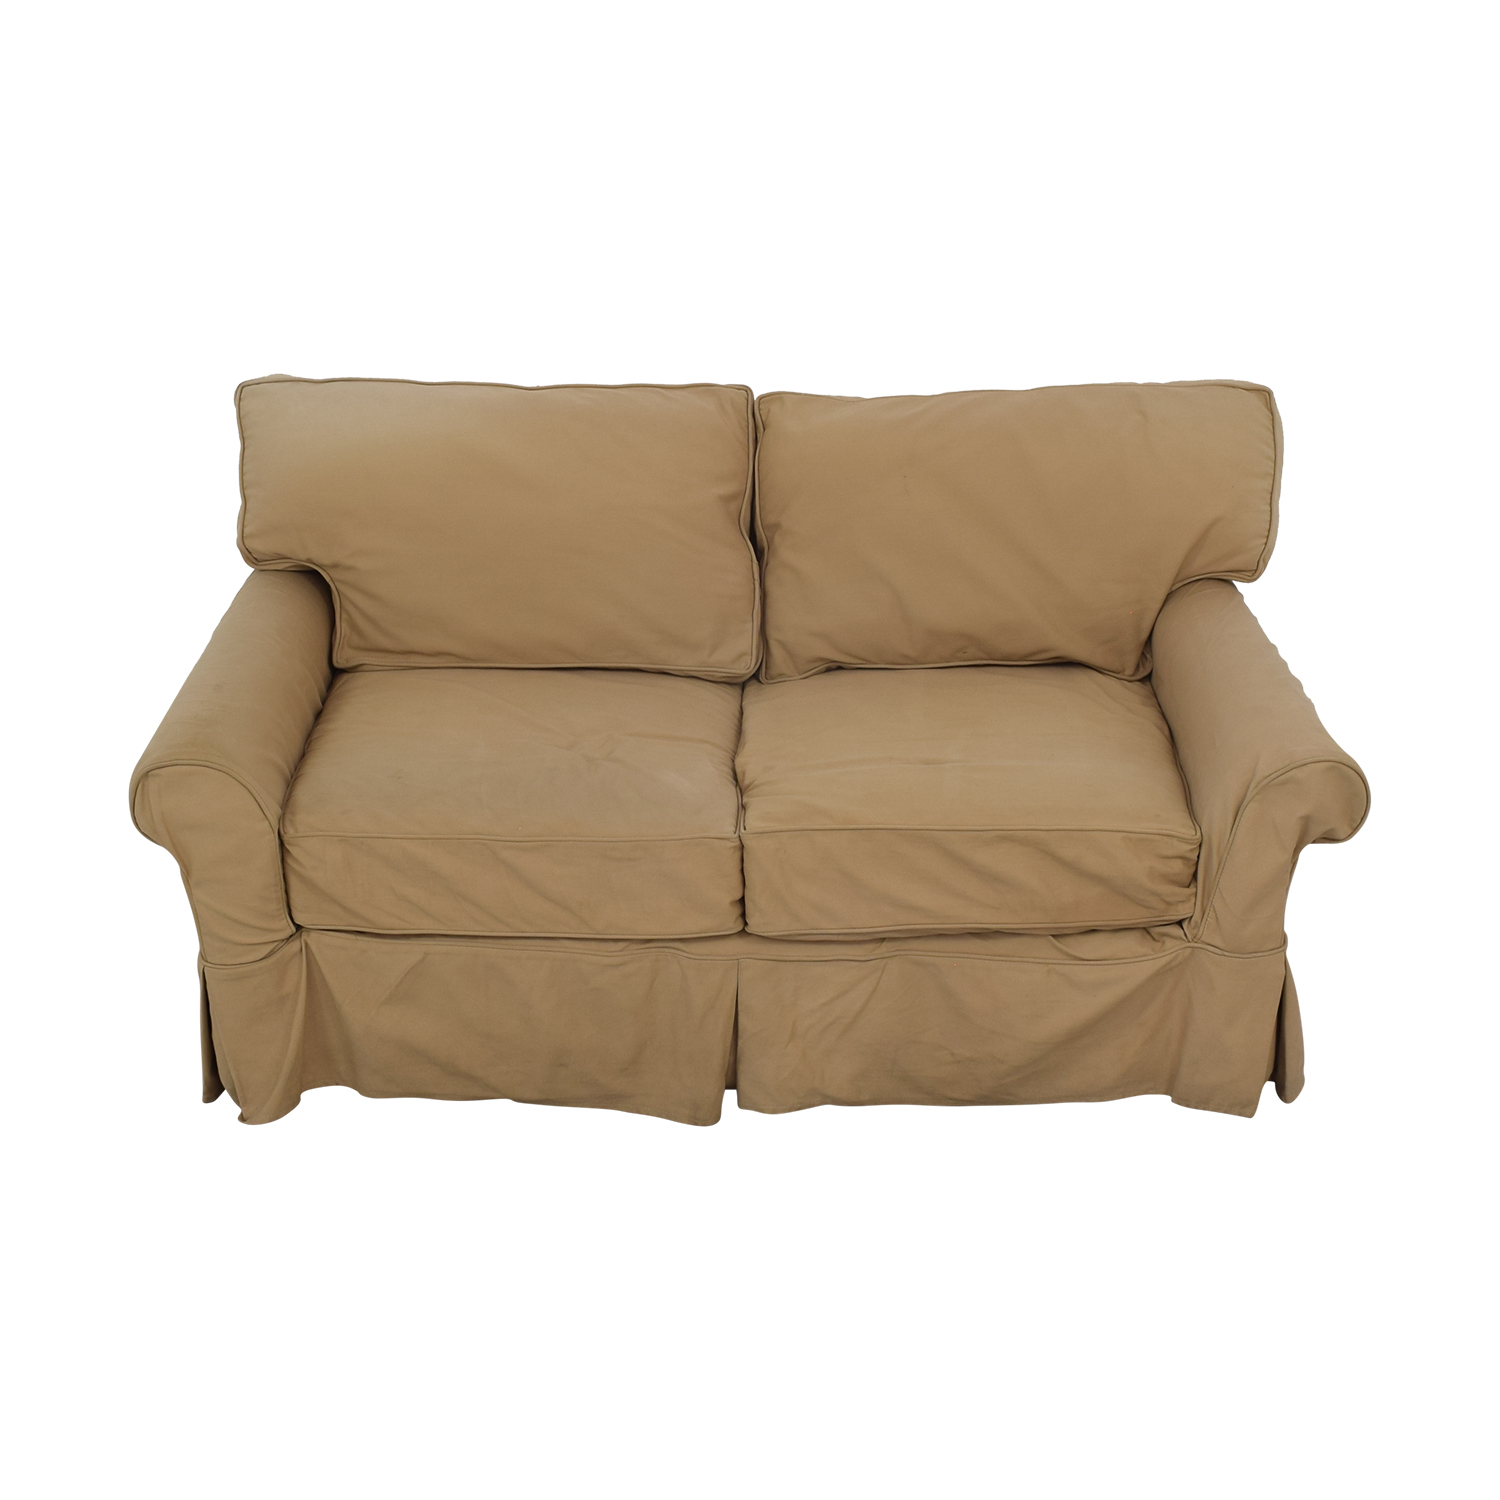 Crate & Barrel Crate & Barrel Potomac Loveseat tan